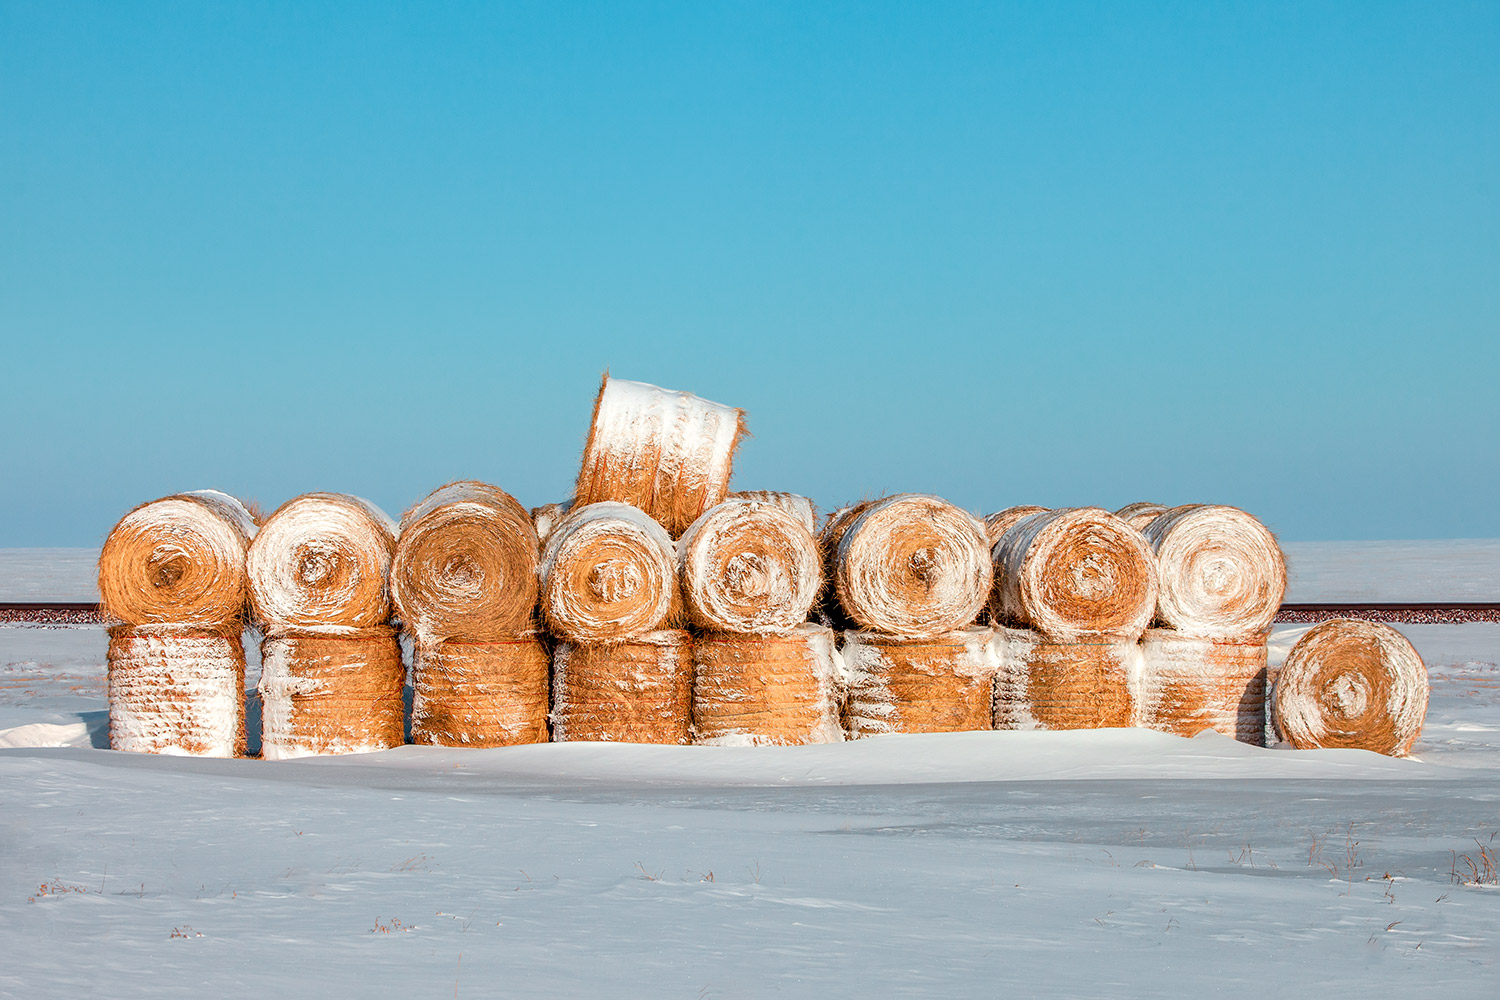 Frosted Wheats No. 2